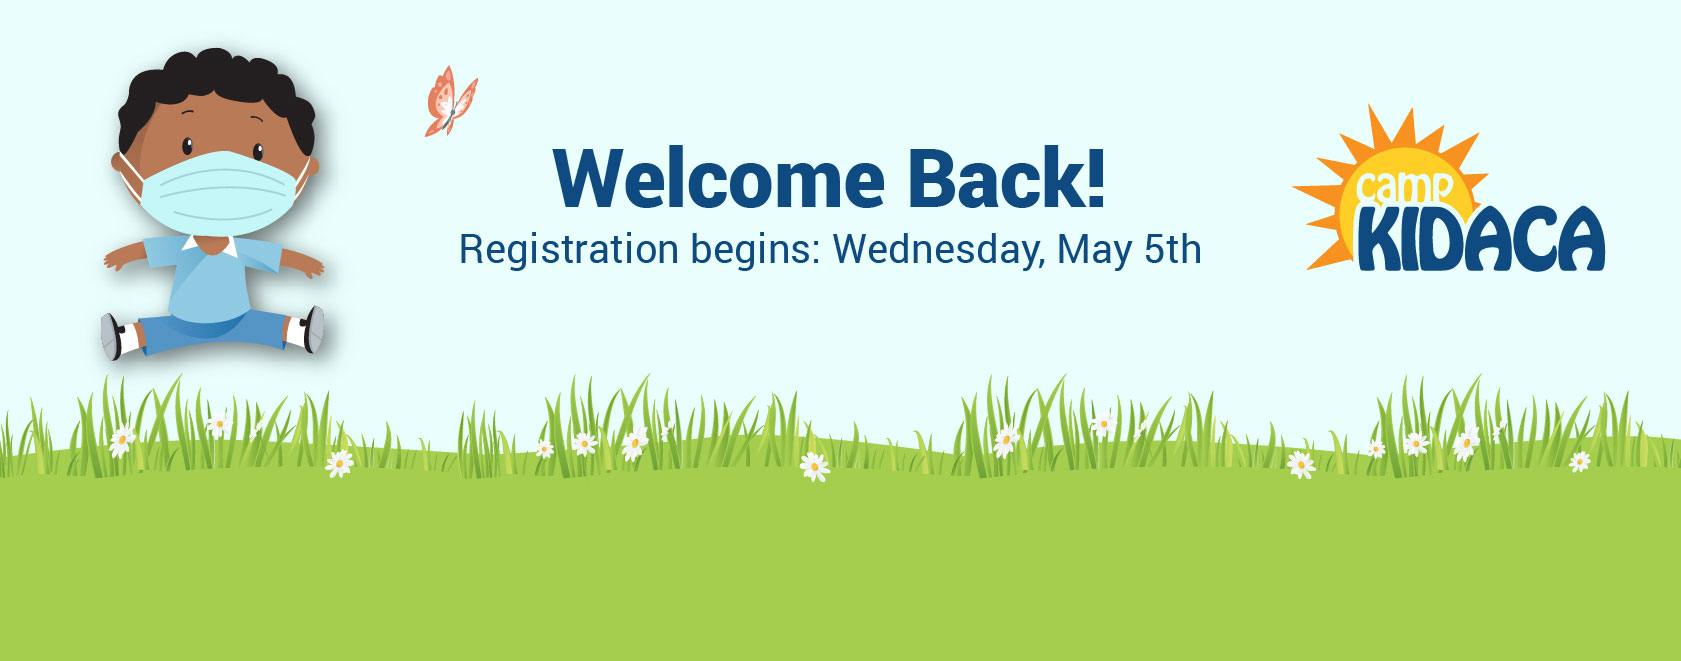 Welcome back Camp Kidaca. Registration opens May 5th